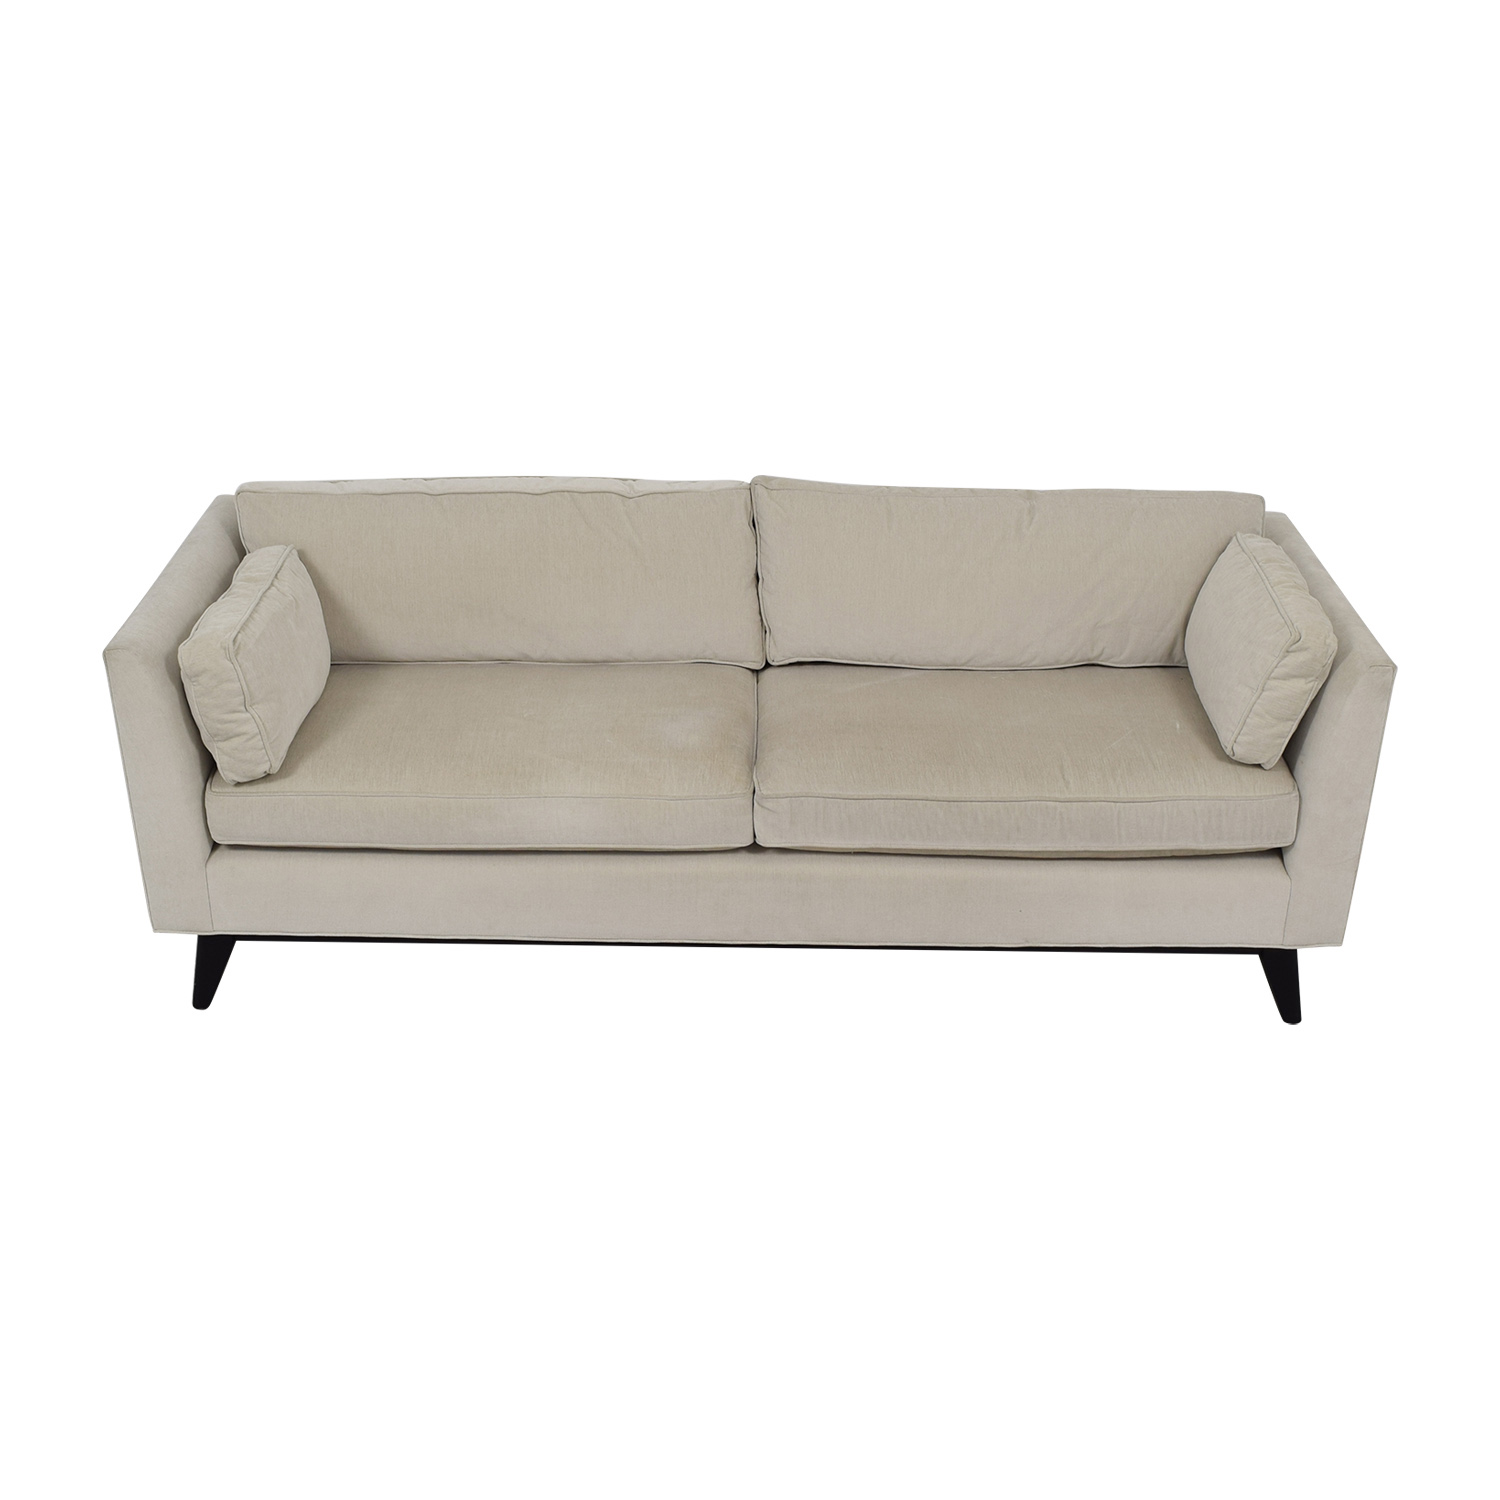 Mitchell Gold + Bob Williams Mitchell Gold + Bob Williams Ainsley White Two-Cushion Sofa coupon